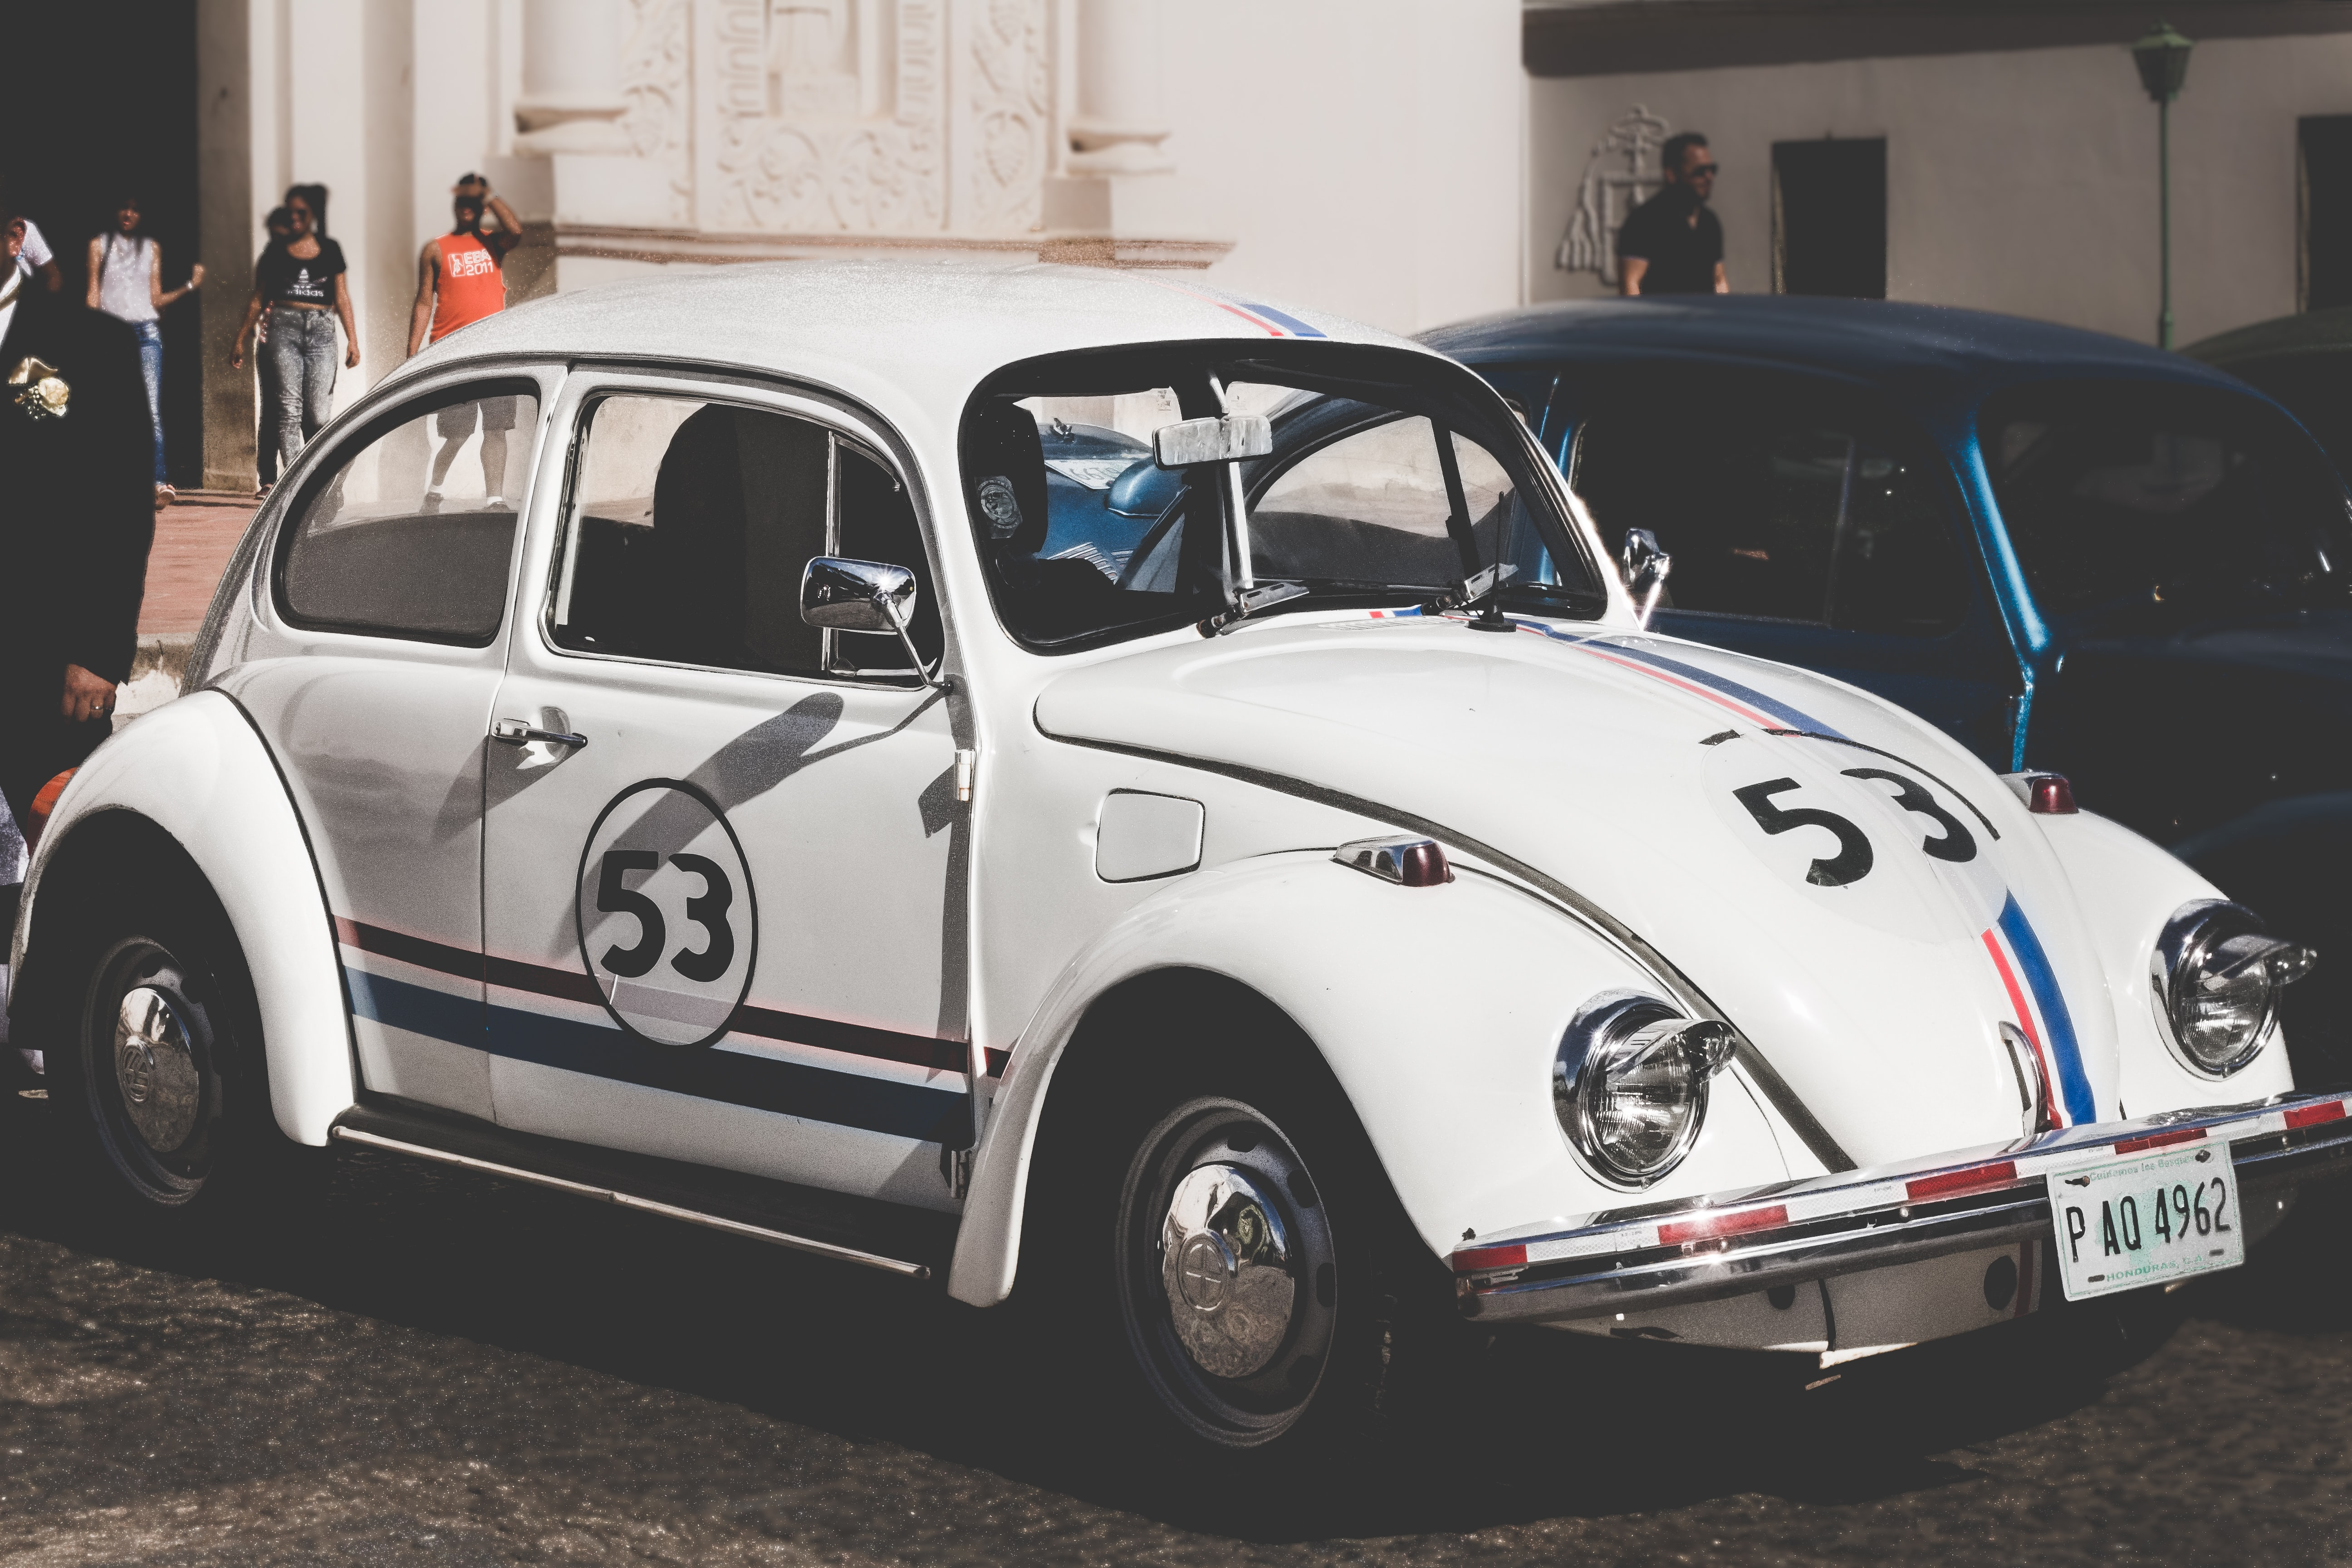 White Volkswagen Herbie Beetle numbered 53 with stripes showcased on the street of Comayagua